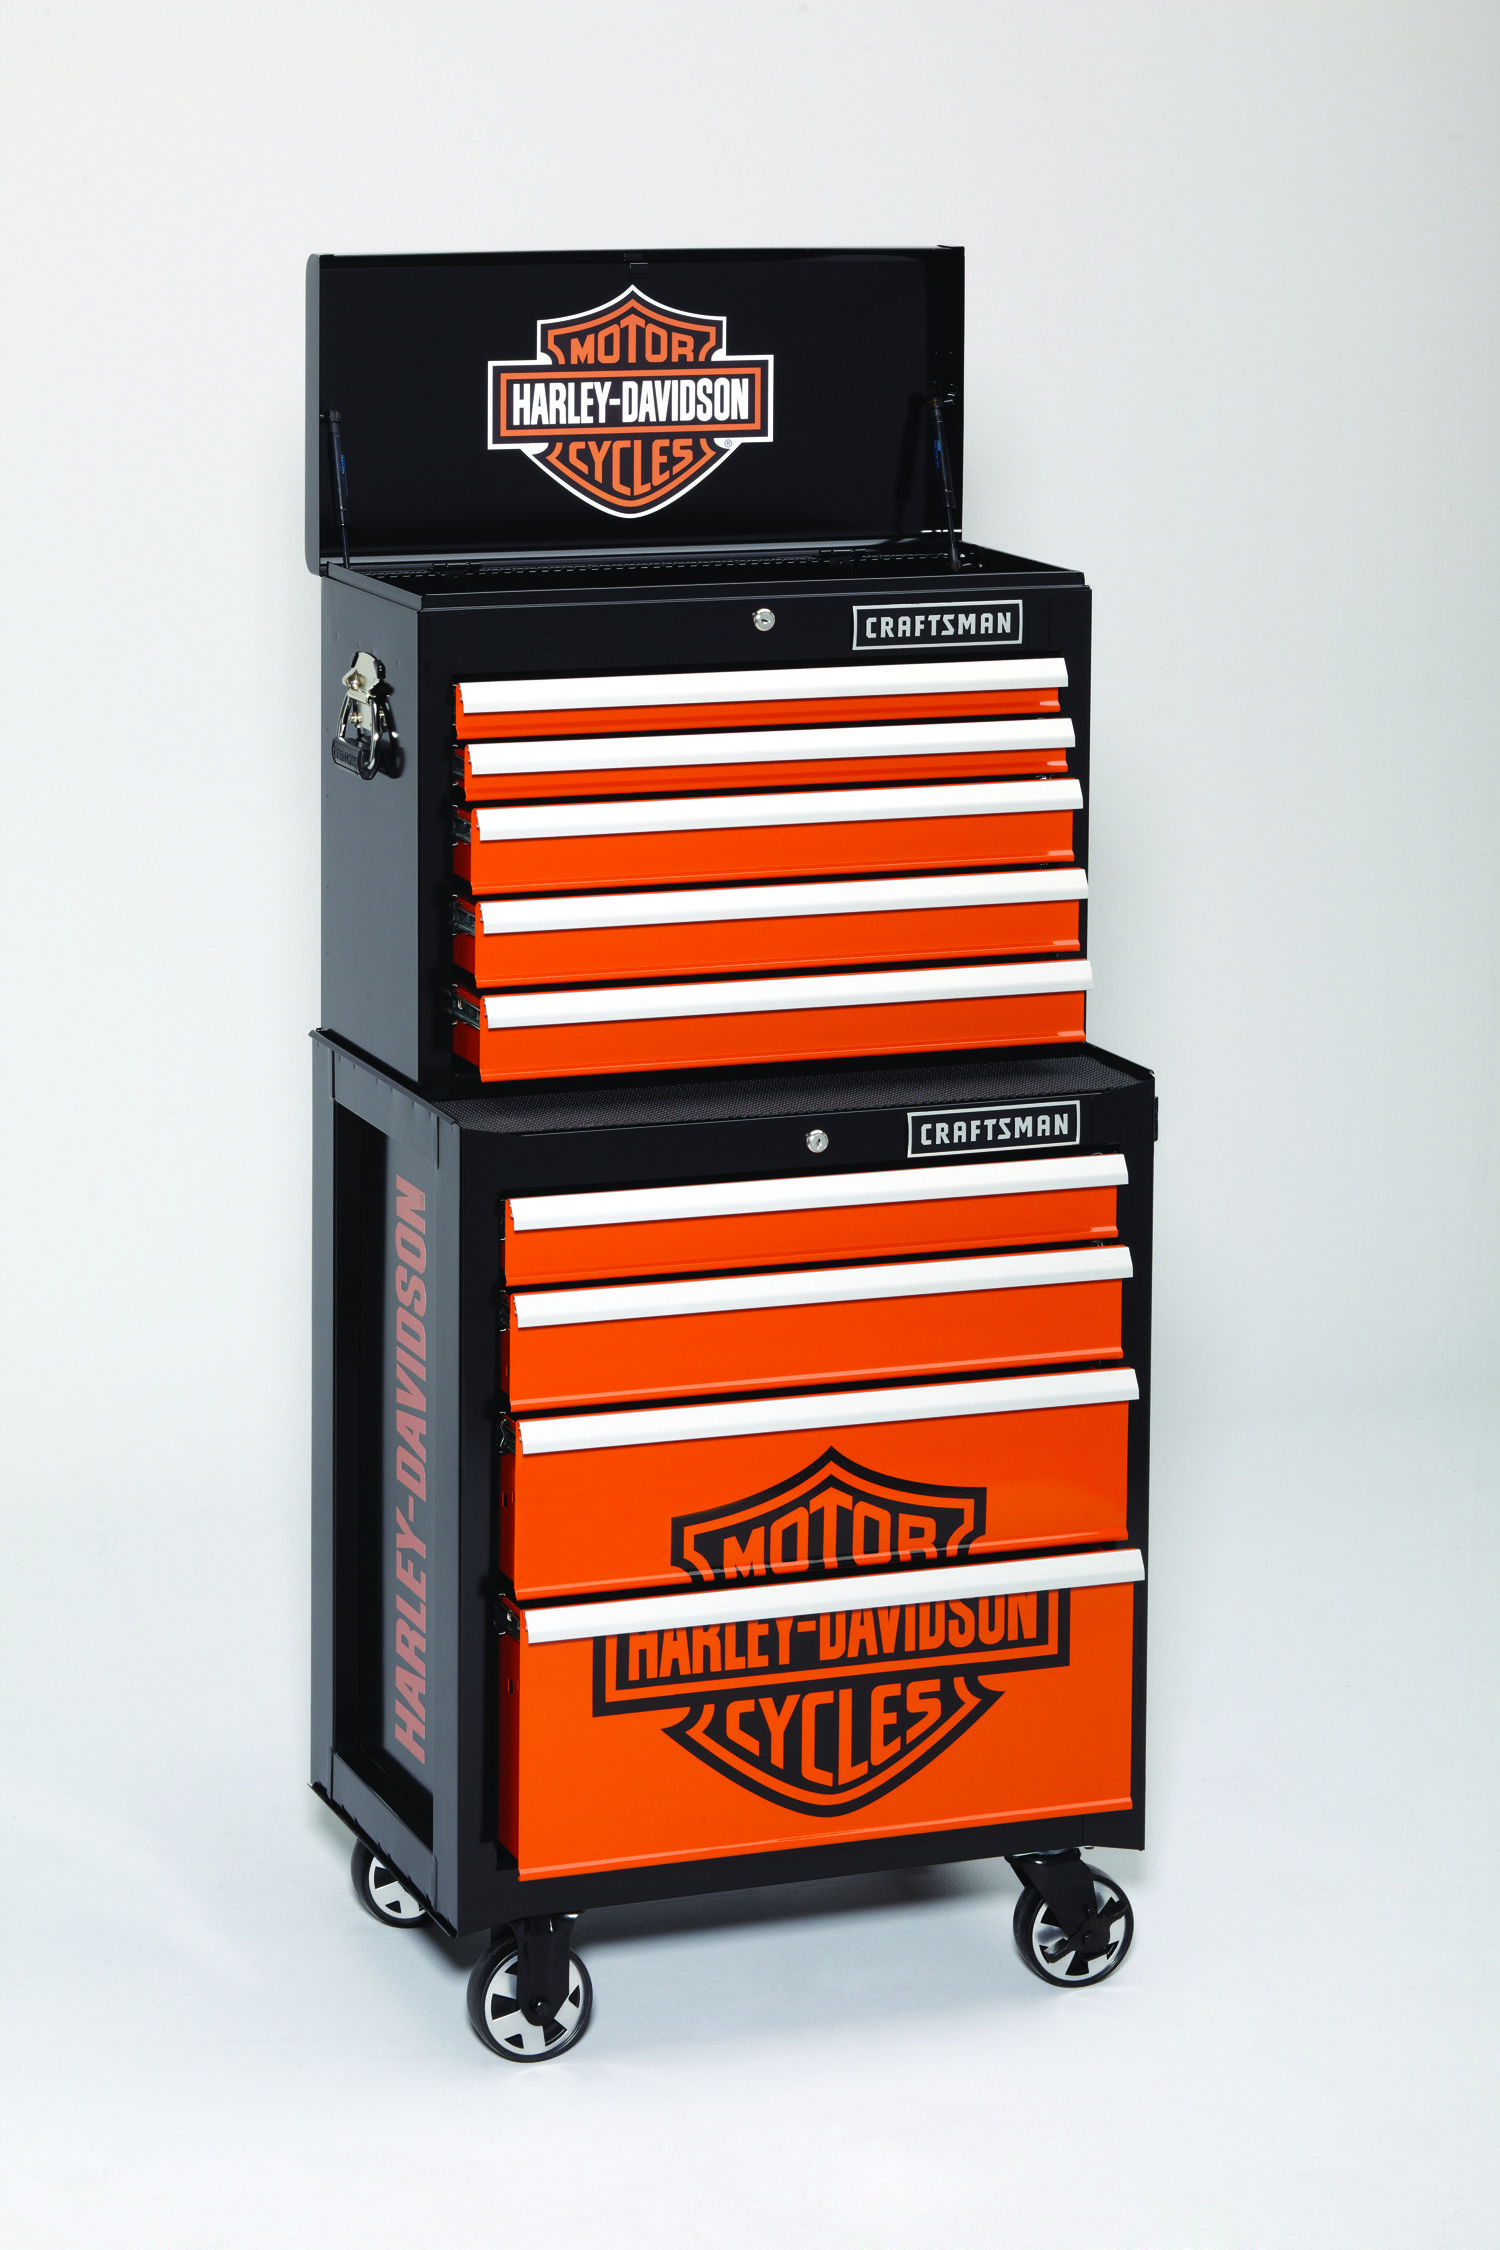 Craftsman And Harley Davidson Launch A Tool Box Storage Line